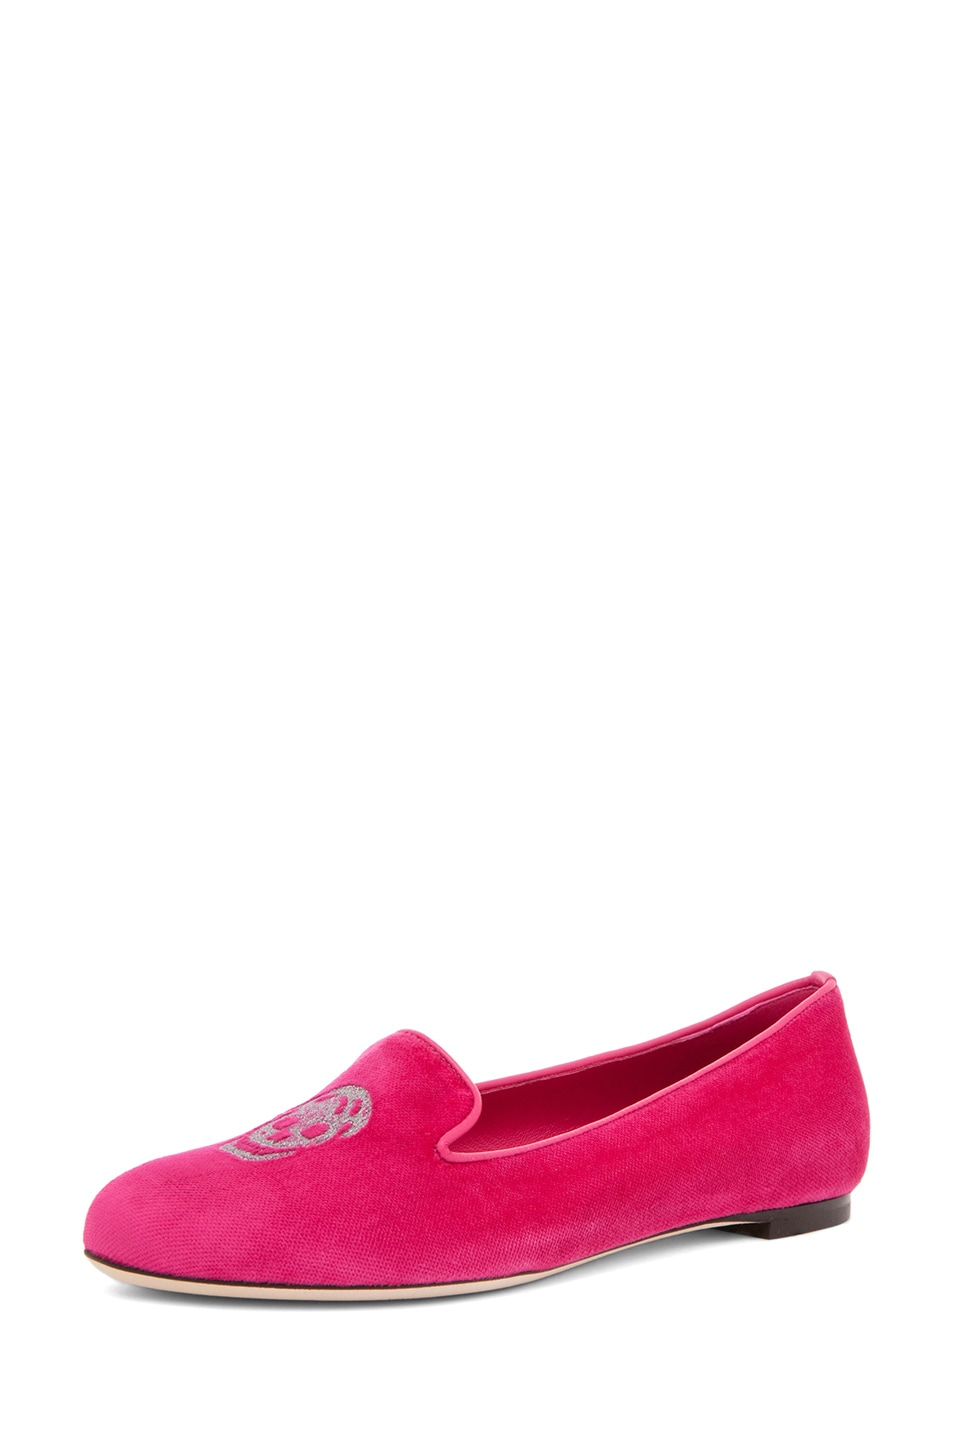 Image 2 of Alexander McQueen Velvet Slipper in Pink